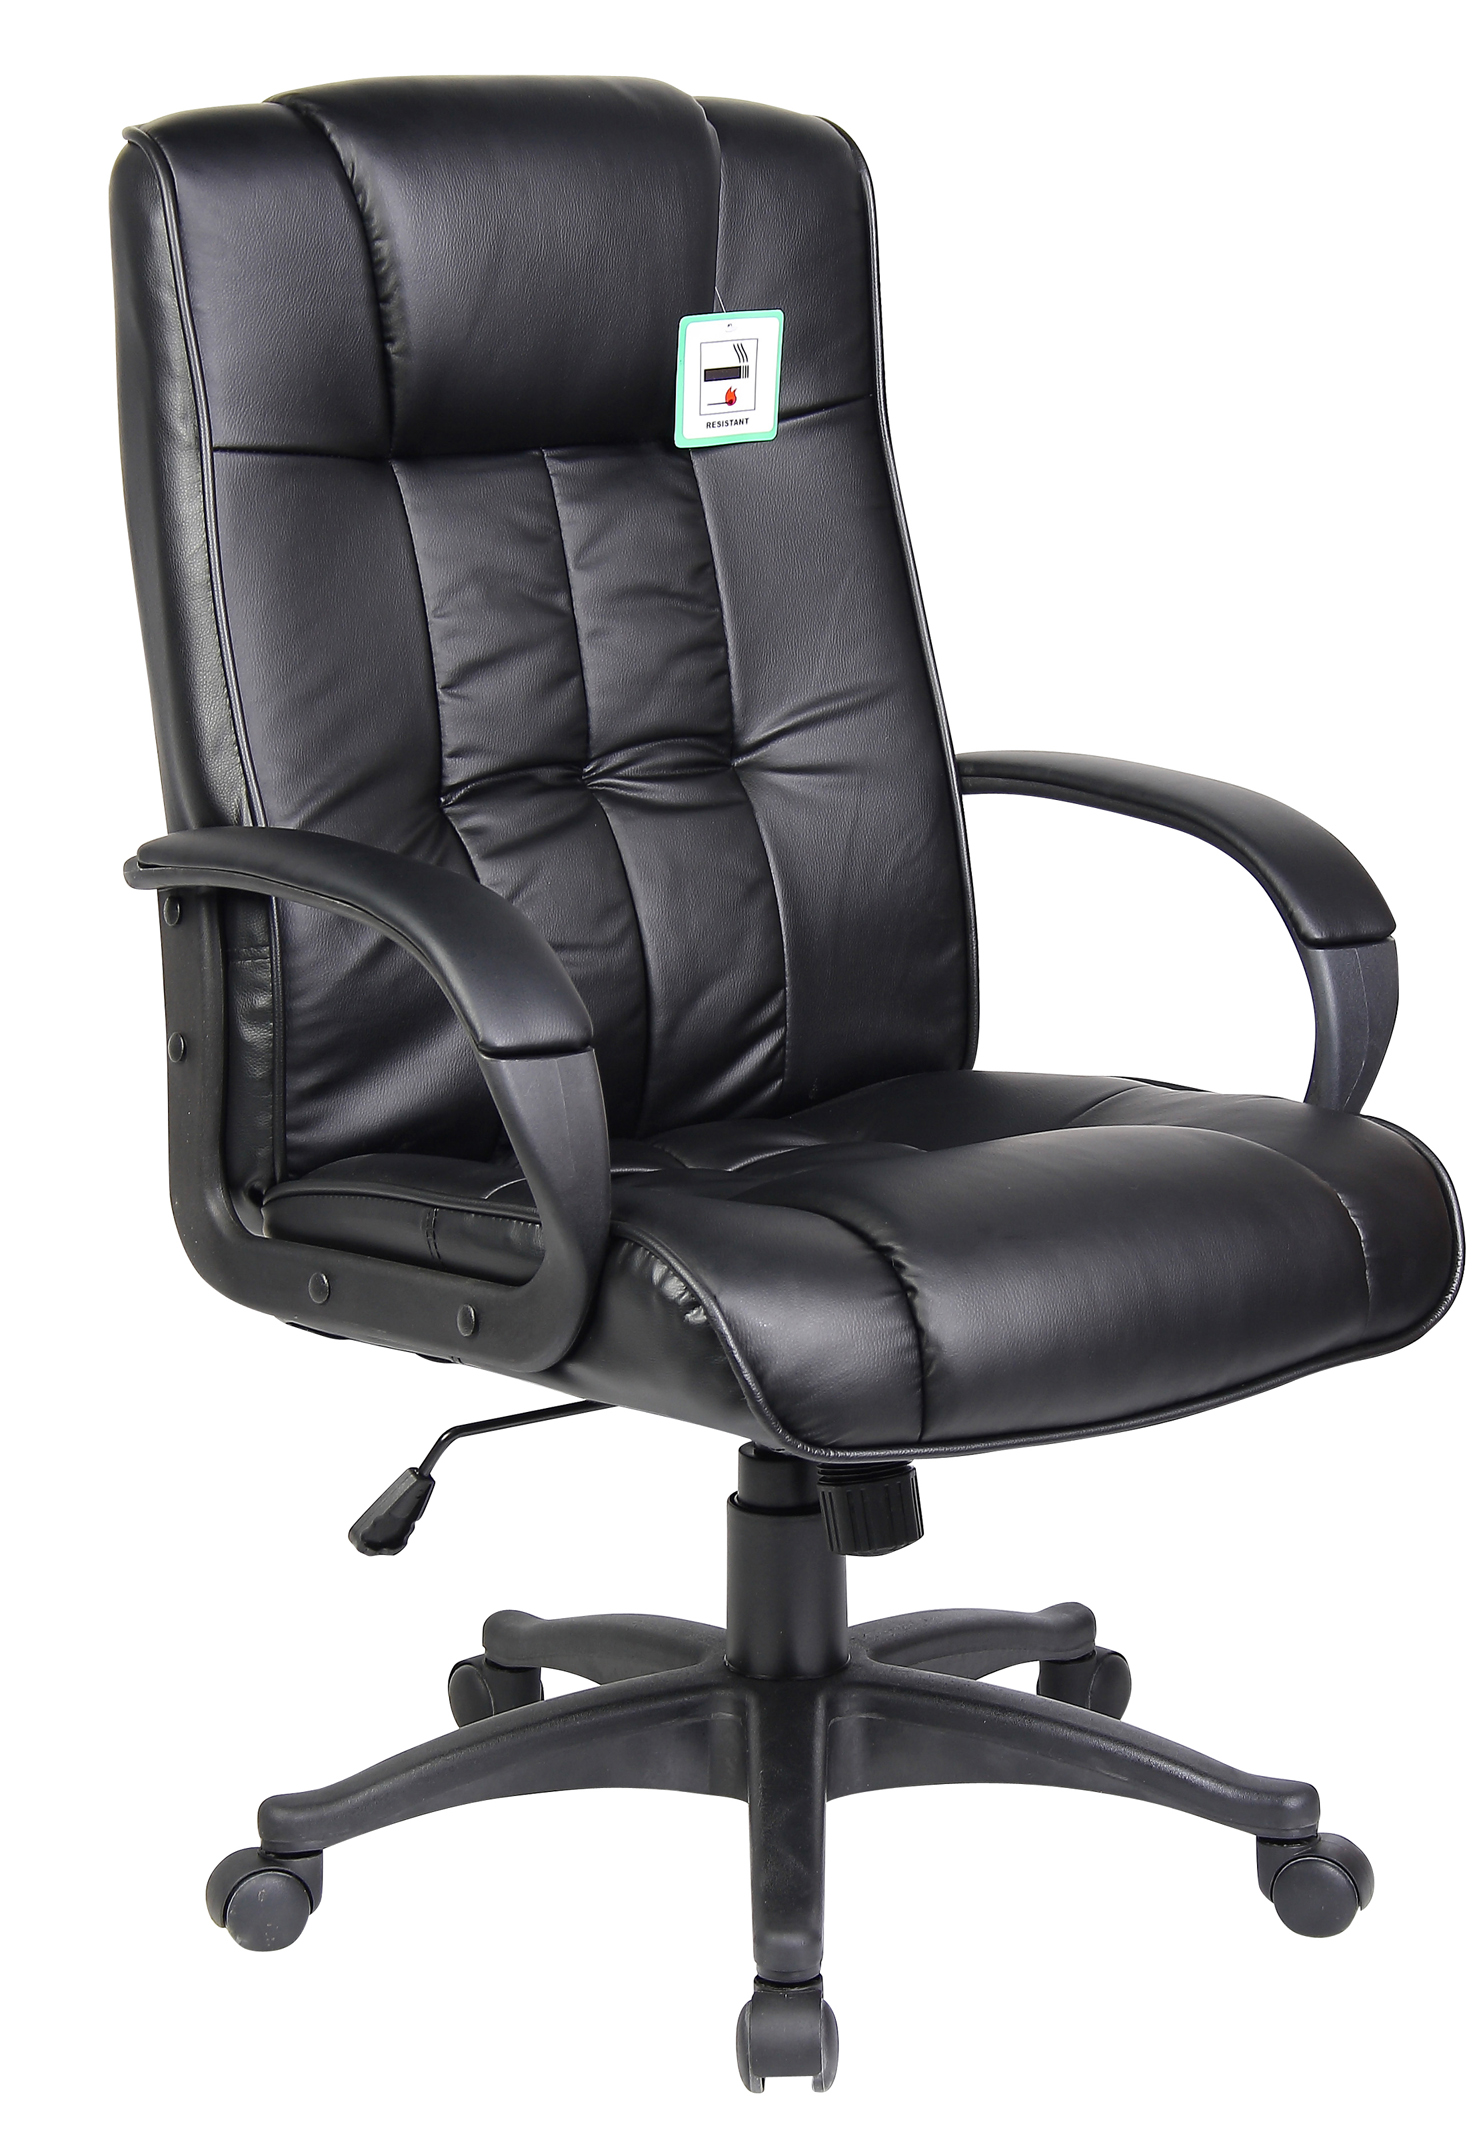 quality swivel pu leather executive office furnitue computer desk